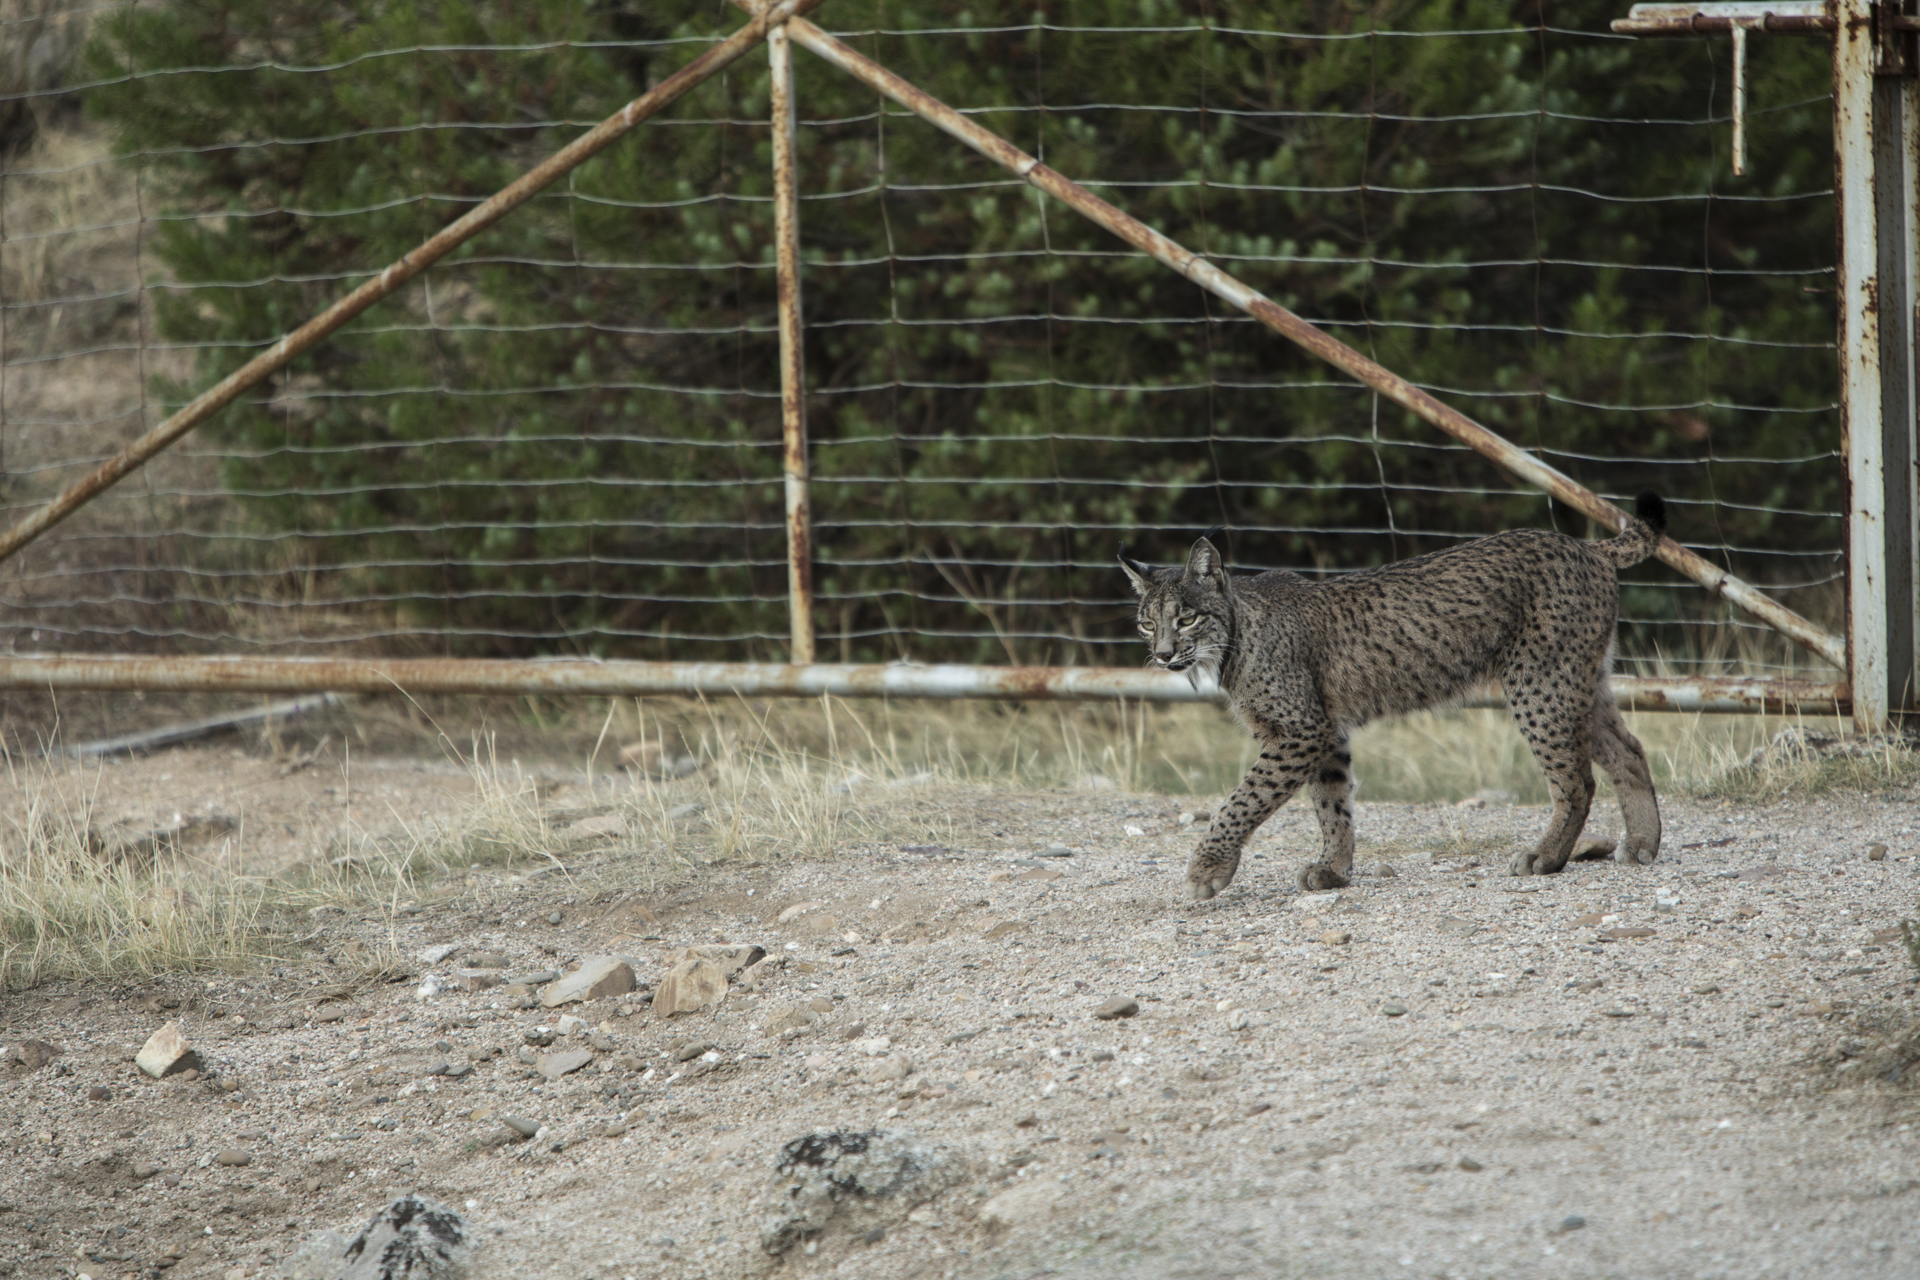 Private estates make up much of the Sierra de Andujar but lynx roam freely, easily crawling under and jumping over fences.